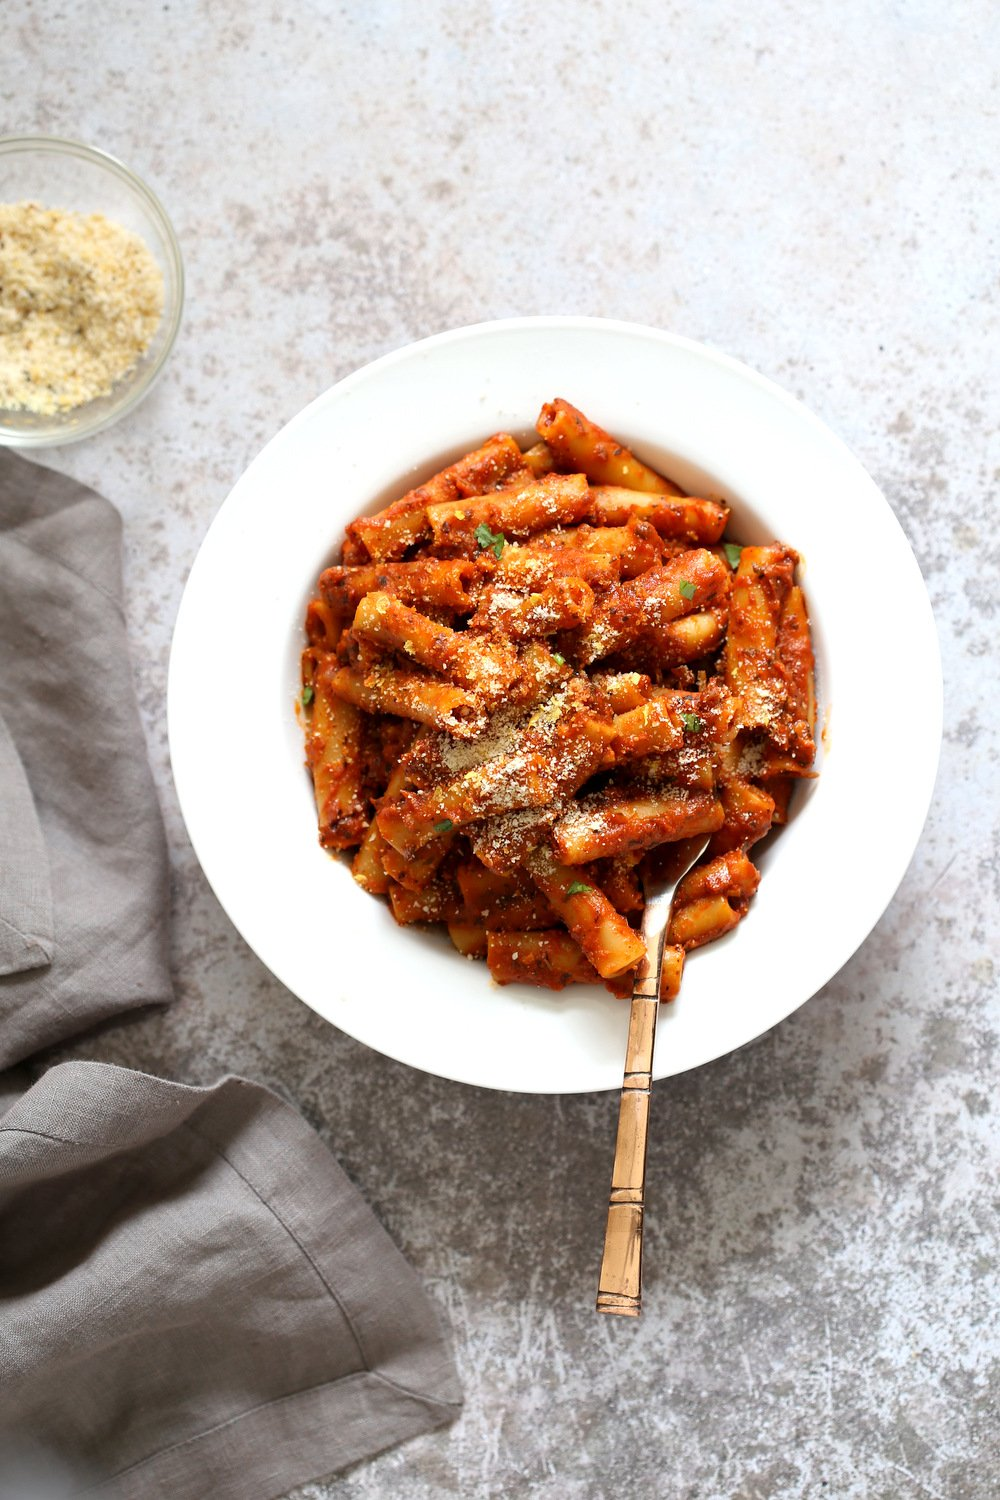 Instant Pot Ziti with Tomato Sauce. Date Night Quick Pasta Meal with Ziti, sprinkled with vegan parm and fresh herbs. 1 Pot #Vegan #ziti #Soyfree #Recipe #VeganRicha #instantPot #pasta . Easily #Glutenfree, #Nutfree